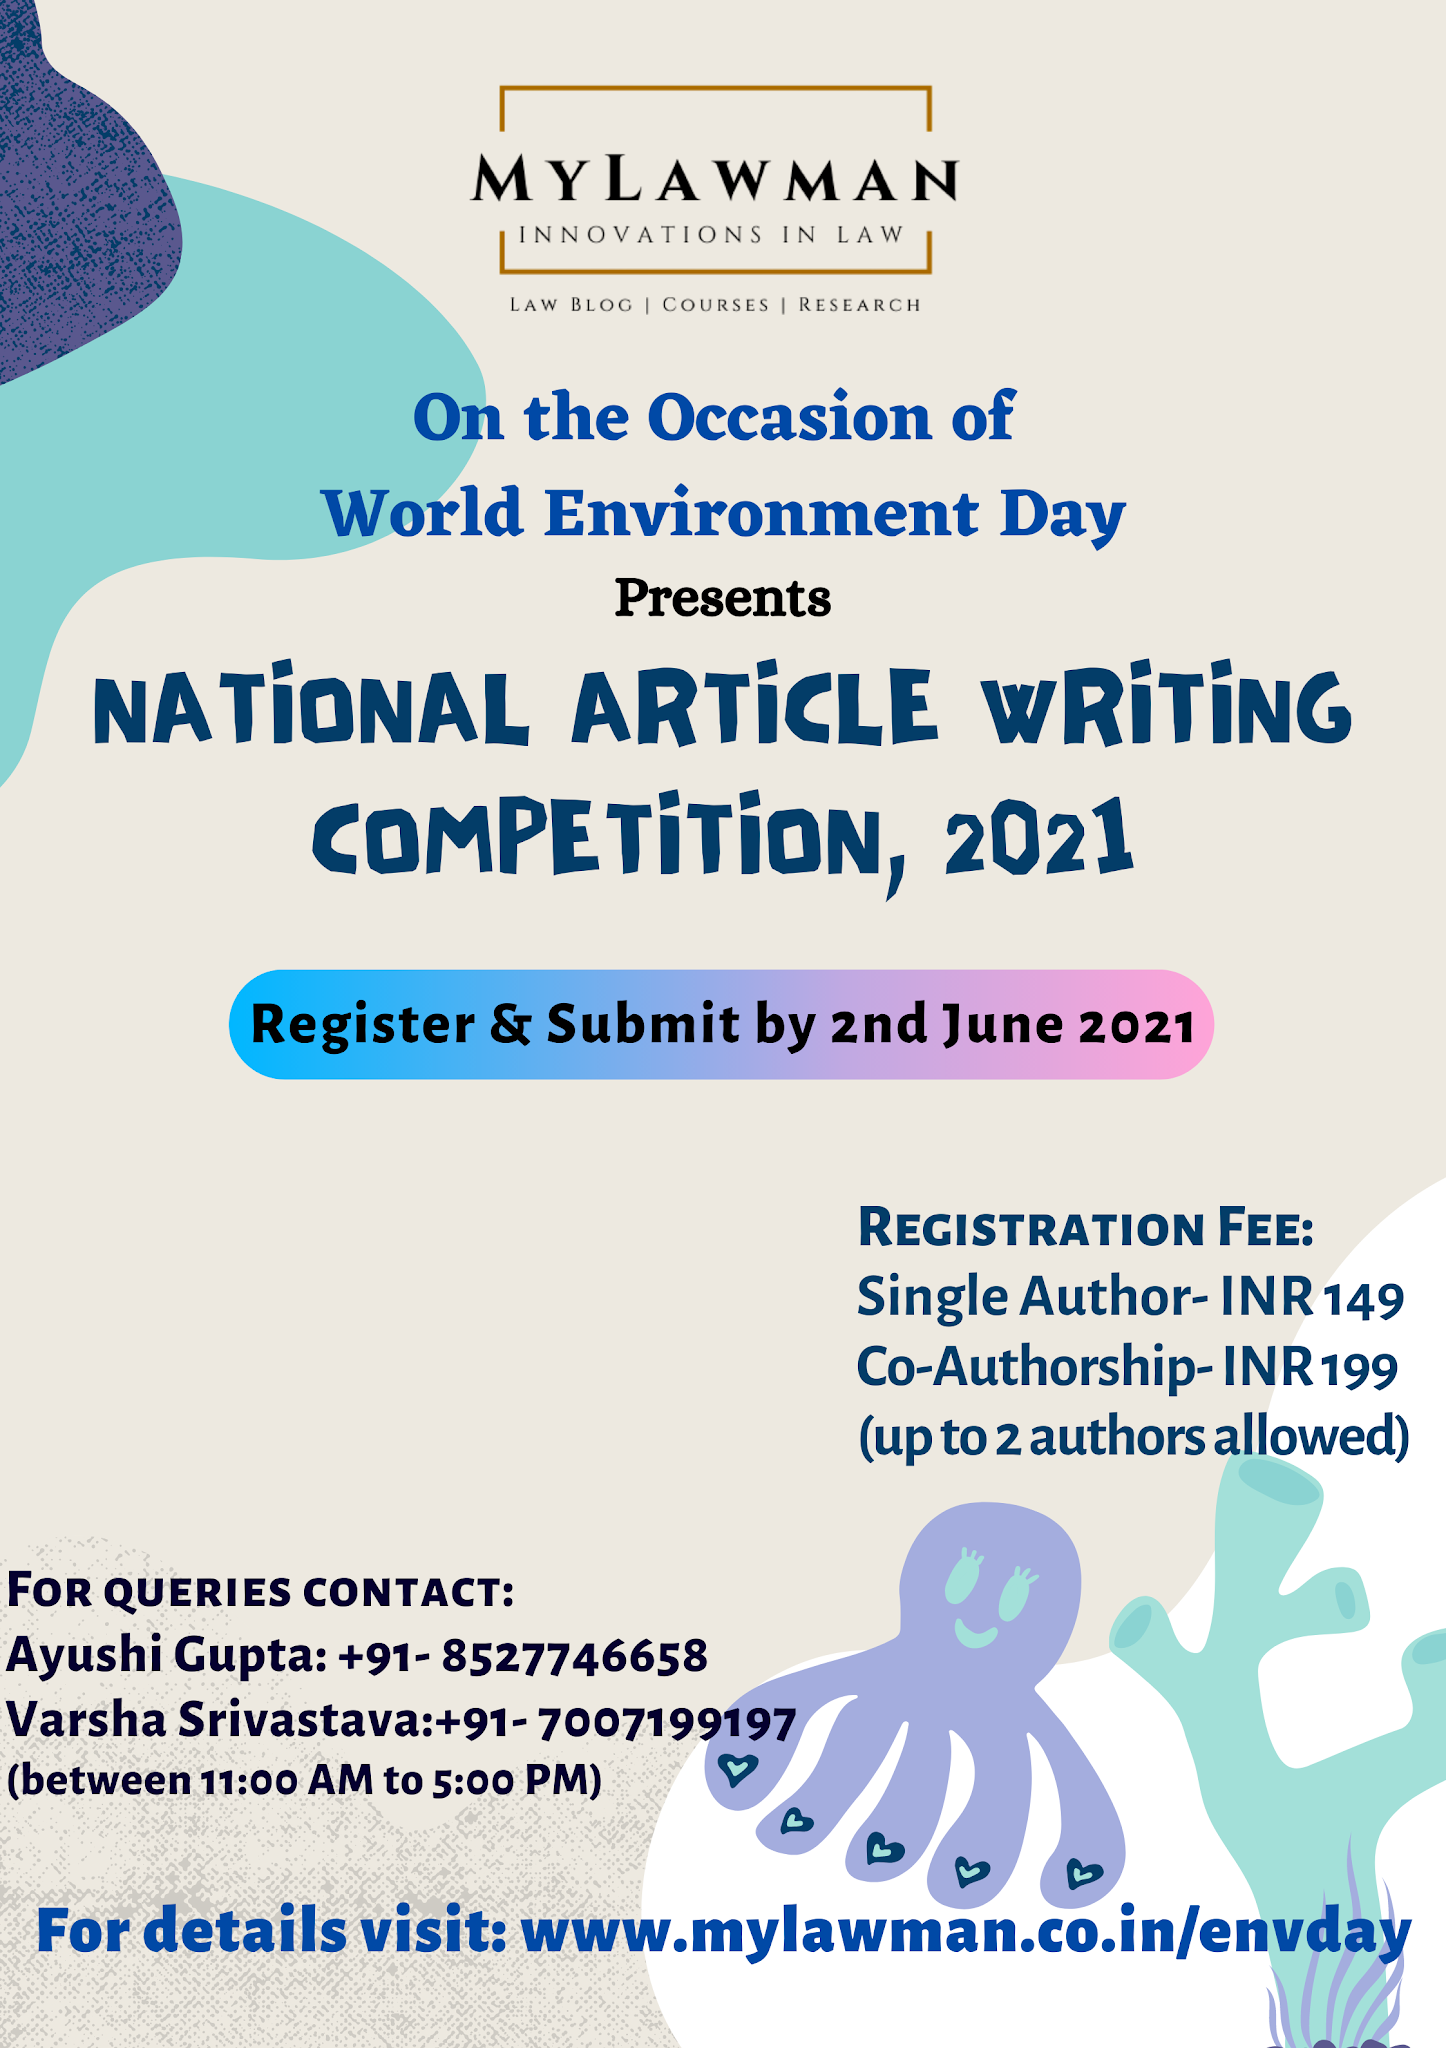 [Competition] National Article Writing Competition by MyLawman strong [Register by 2 June 2021]